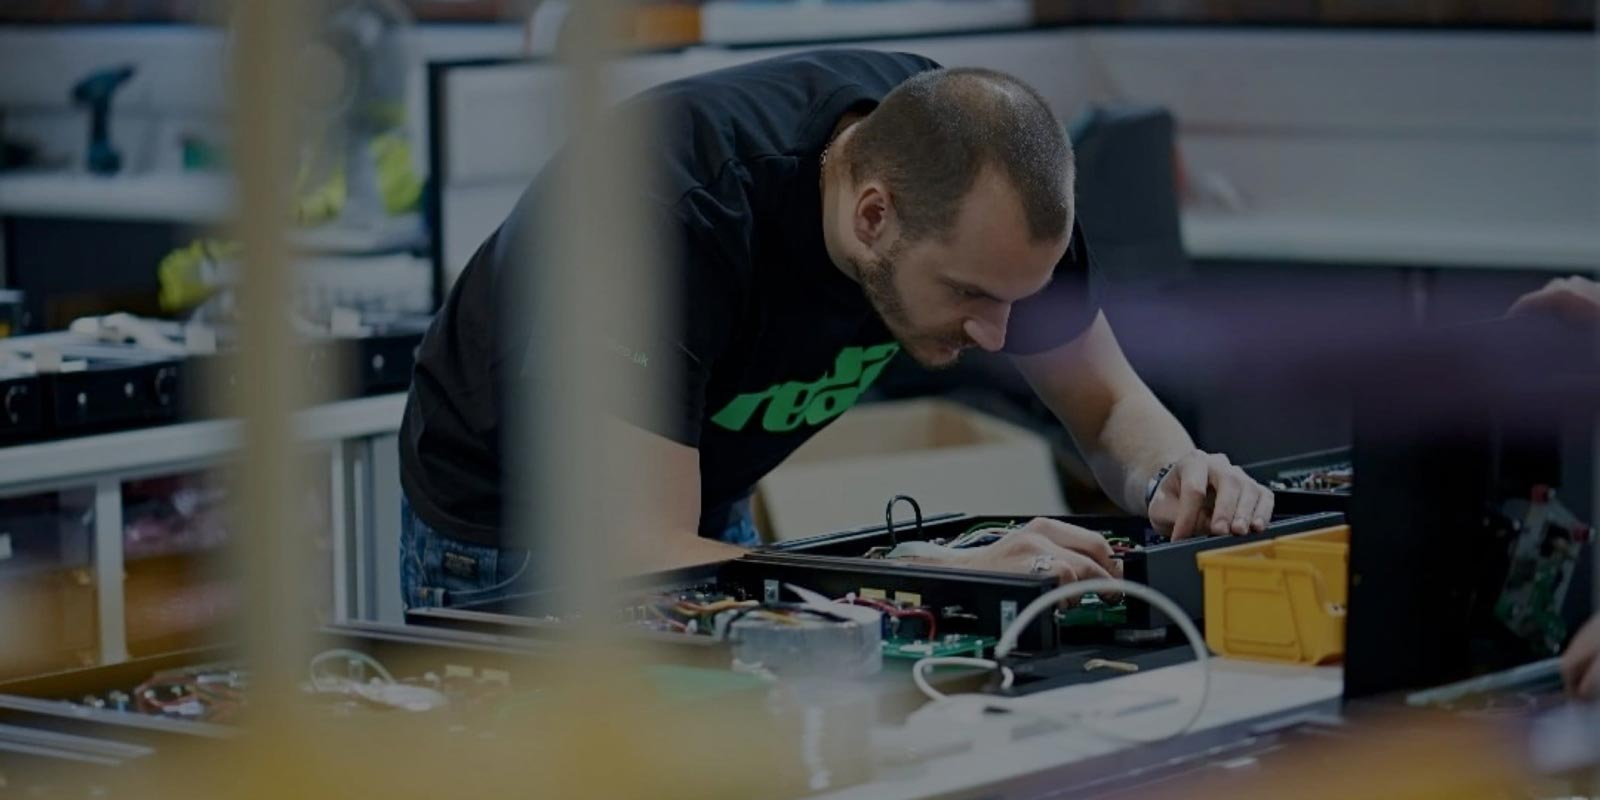 Inside the Rega turntable factory in england where experts build turntables of very high quality.